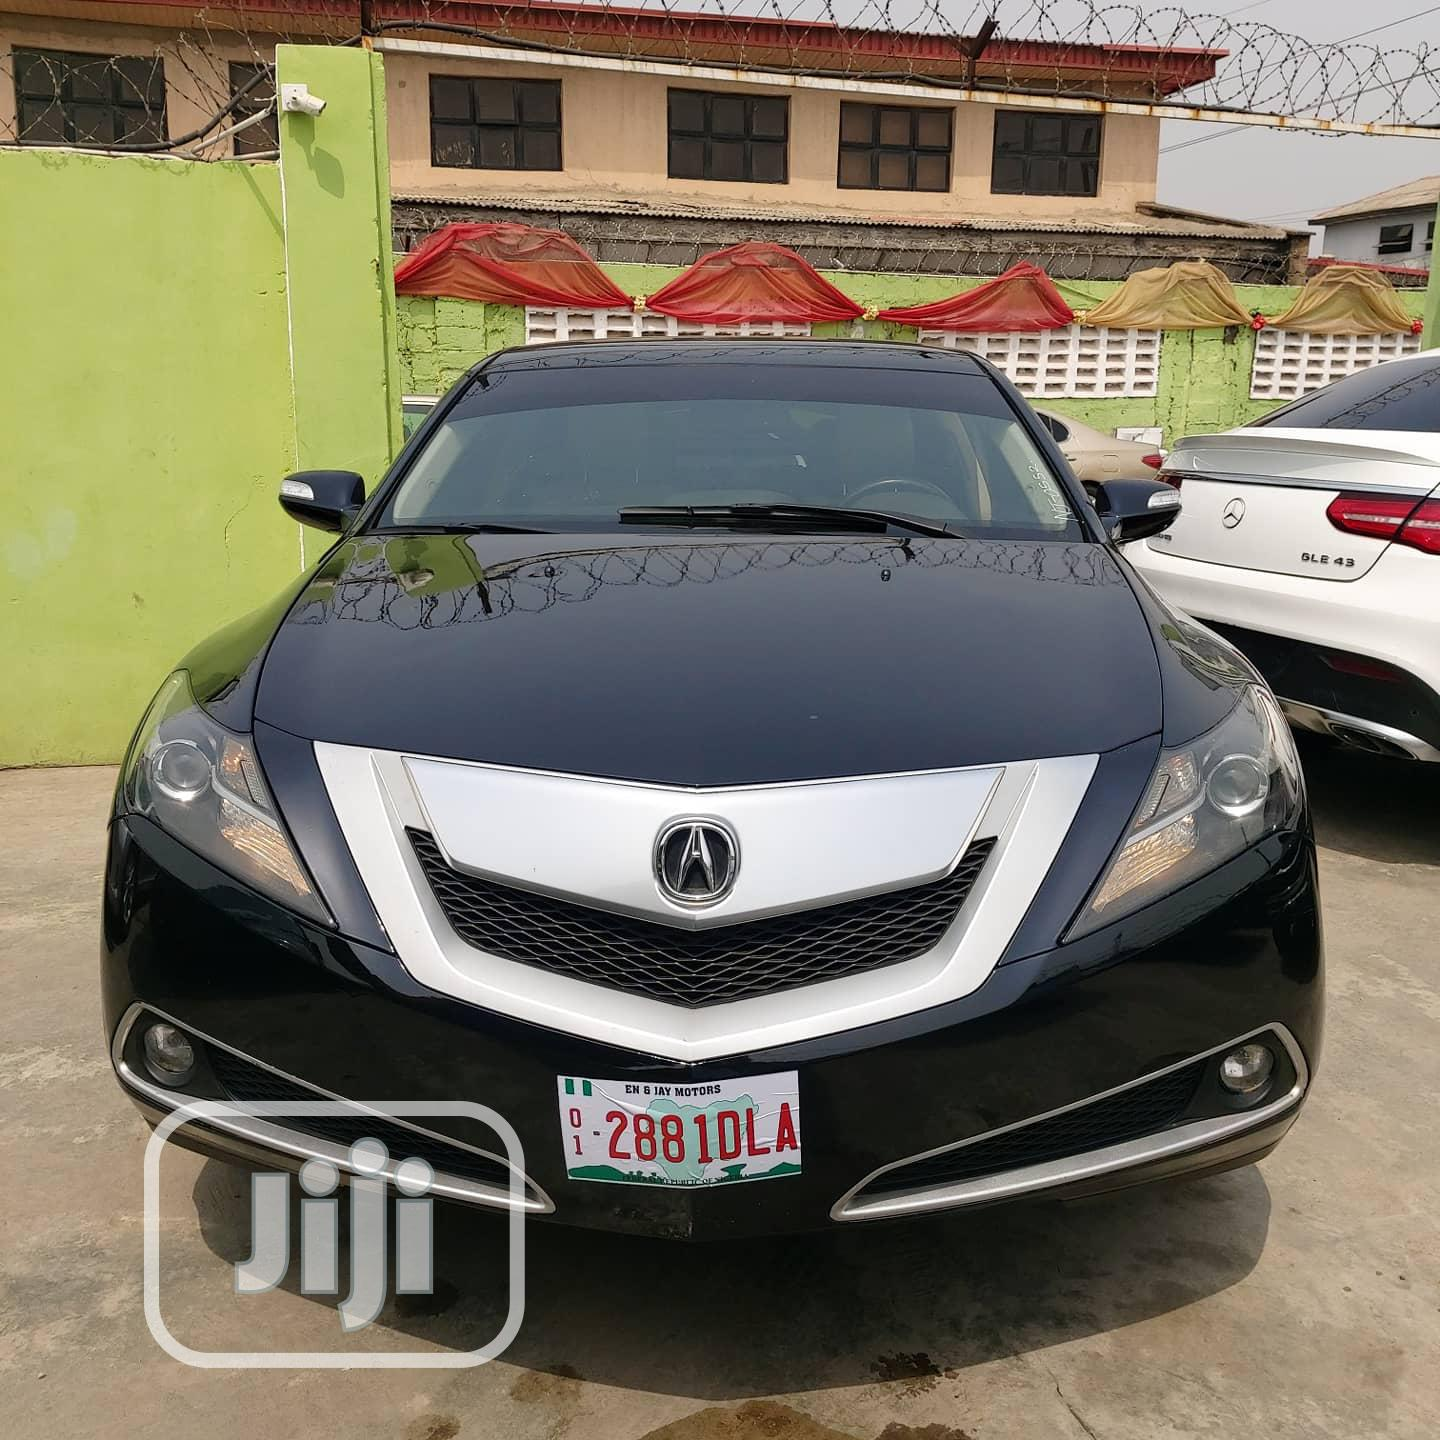 Acura Zdx 2011 Base Awd Black In Agege Cars Kaywheels Autos Jiji Ng